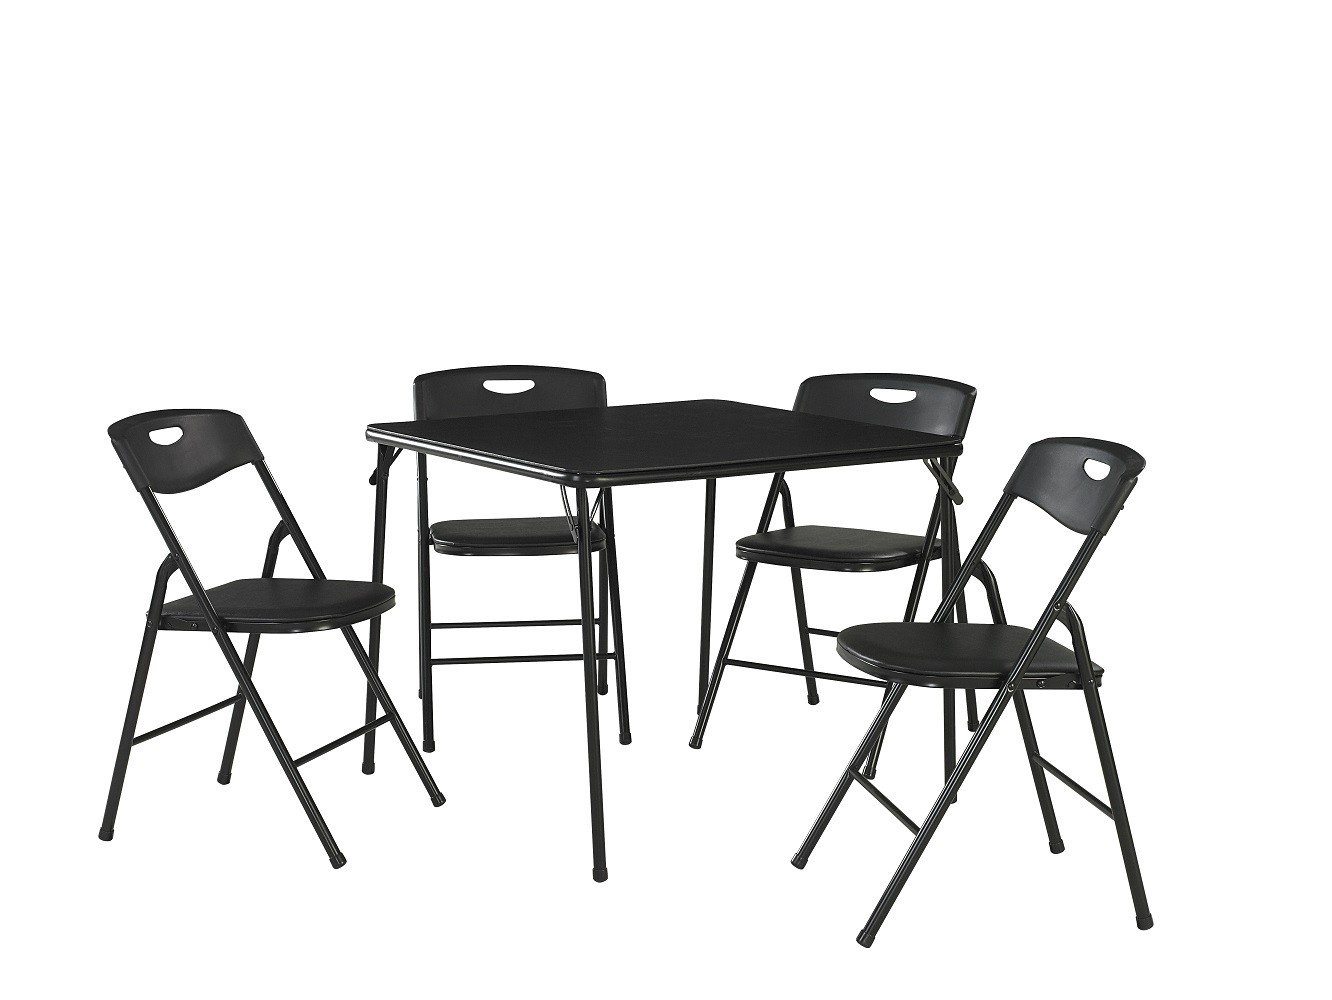 Cosco 5-Piece Folding Table and Chair Set, Apple Green Dorel Home Furnishings 37557APGE